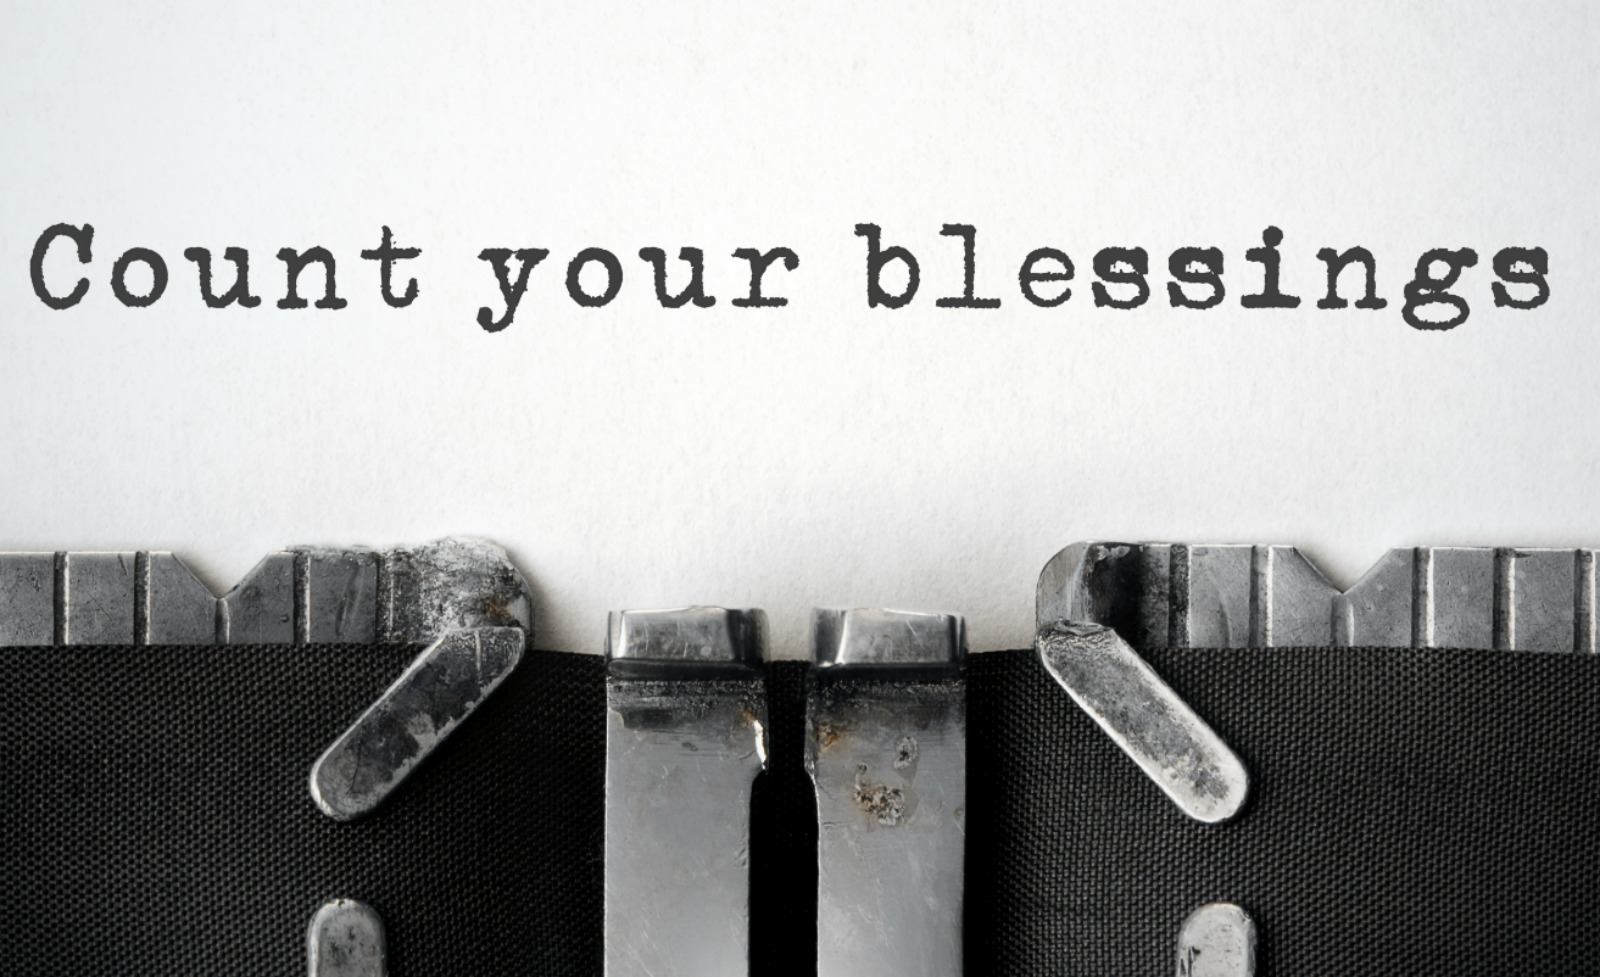 blessings, family, gratitude, habits, health, mindfulness